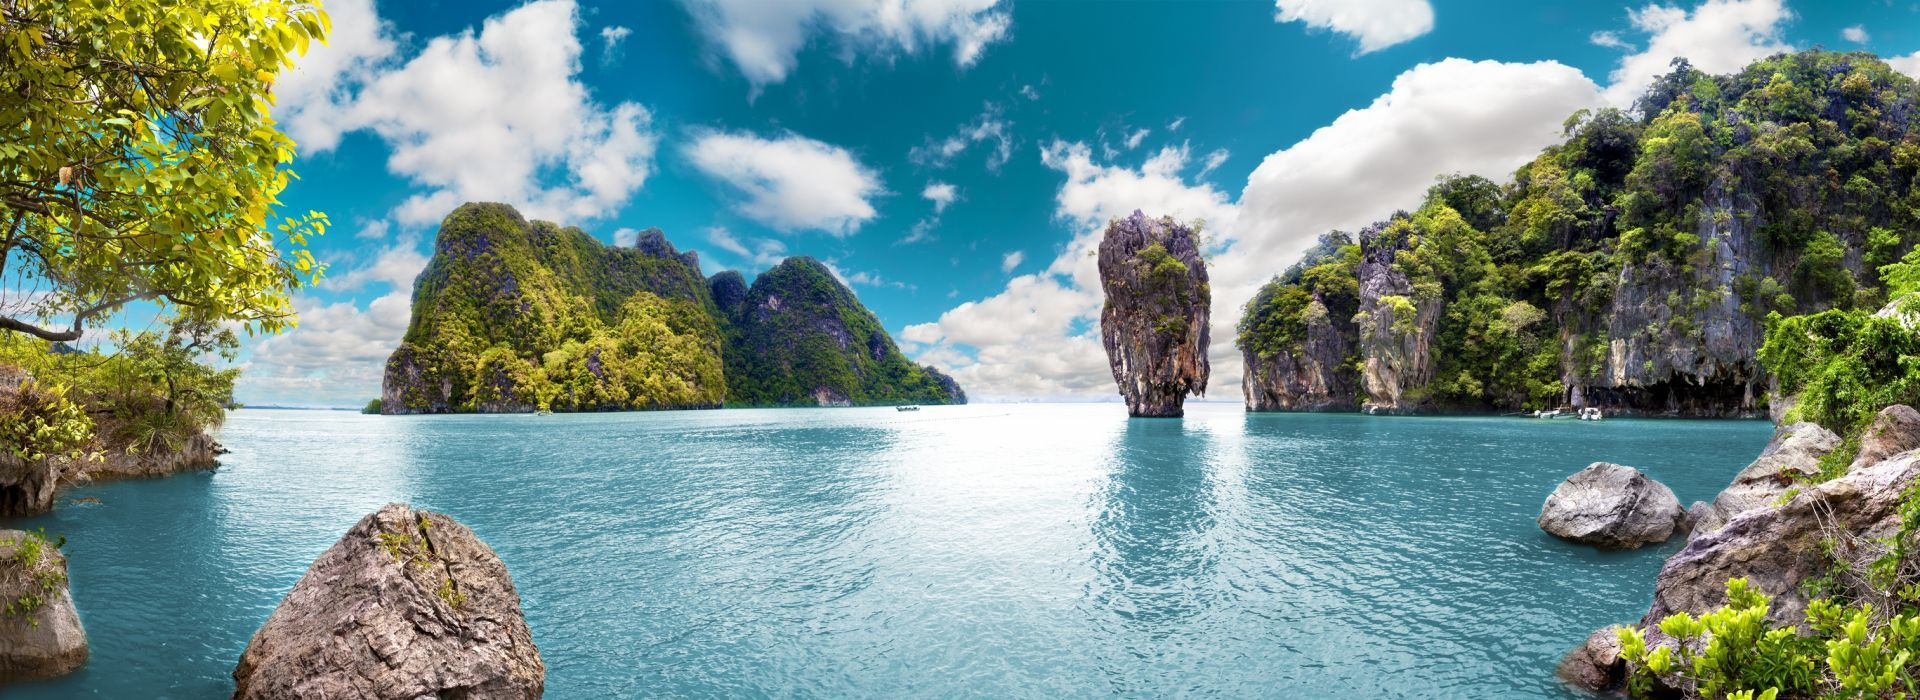 Natural landmarks sightseeing Tours in Thailand